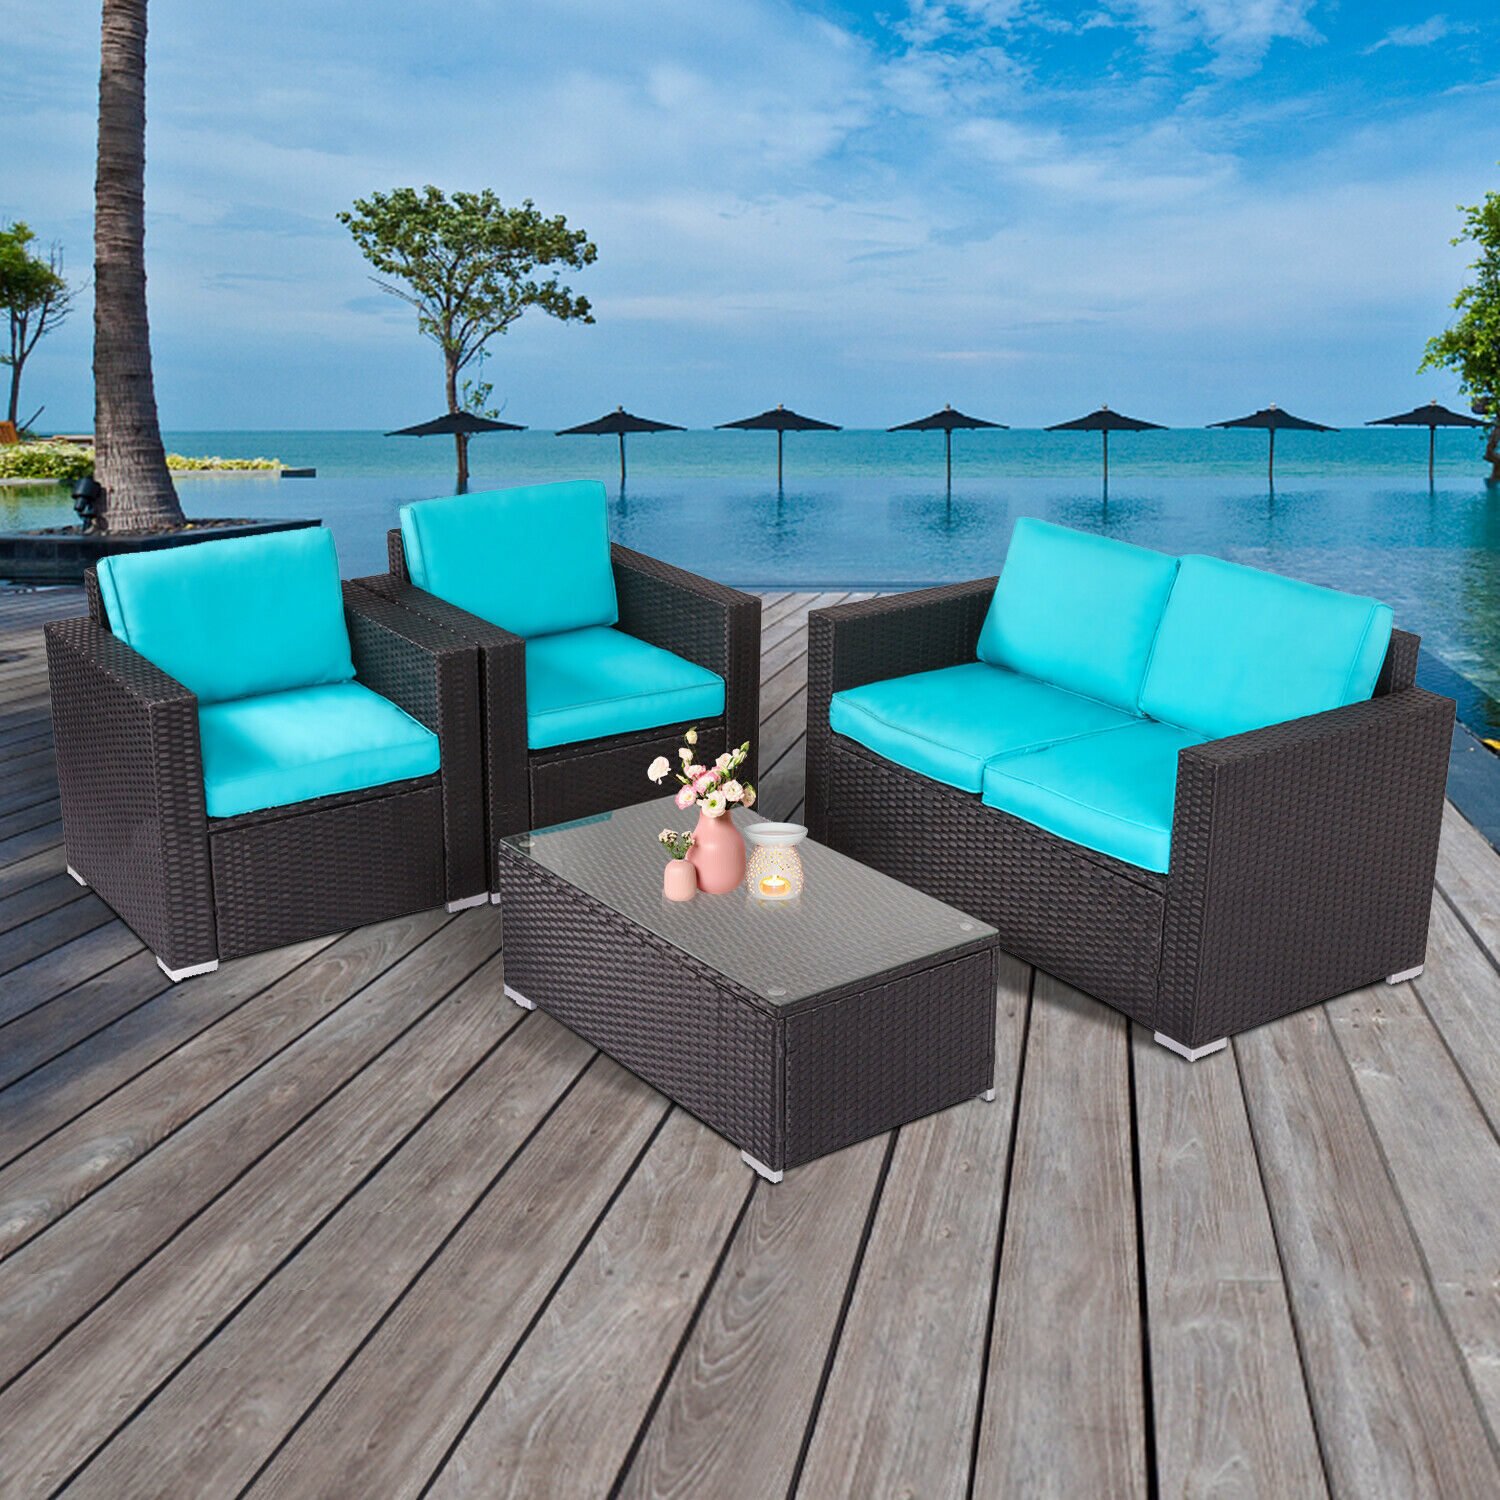 Garden Furniture - 4 PCs Rattan Patio Outdoor Furniture Set Garden Lawn Sofa Sectional Set Blue